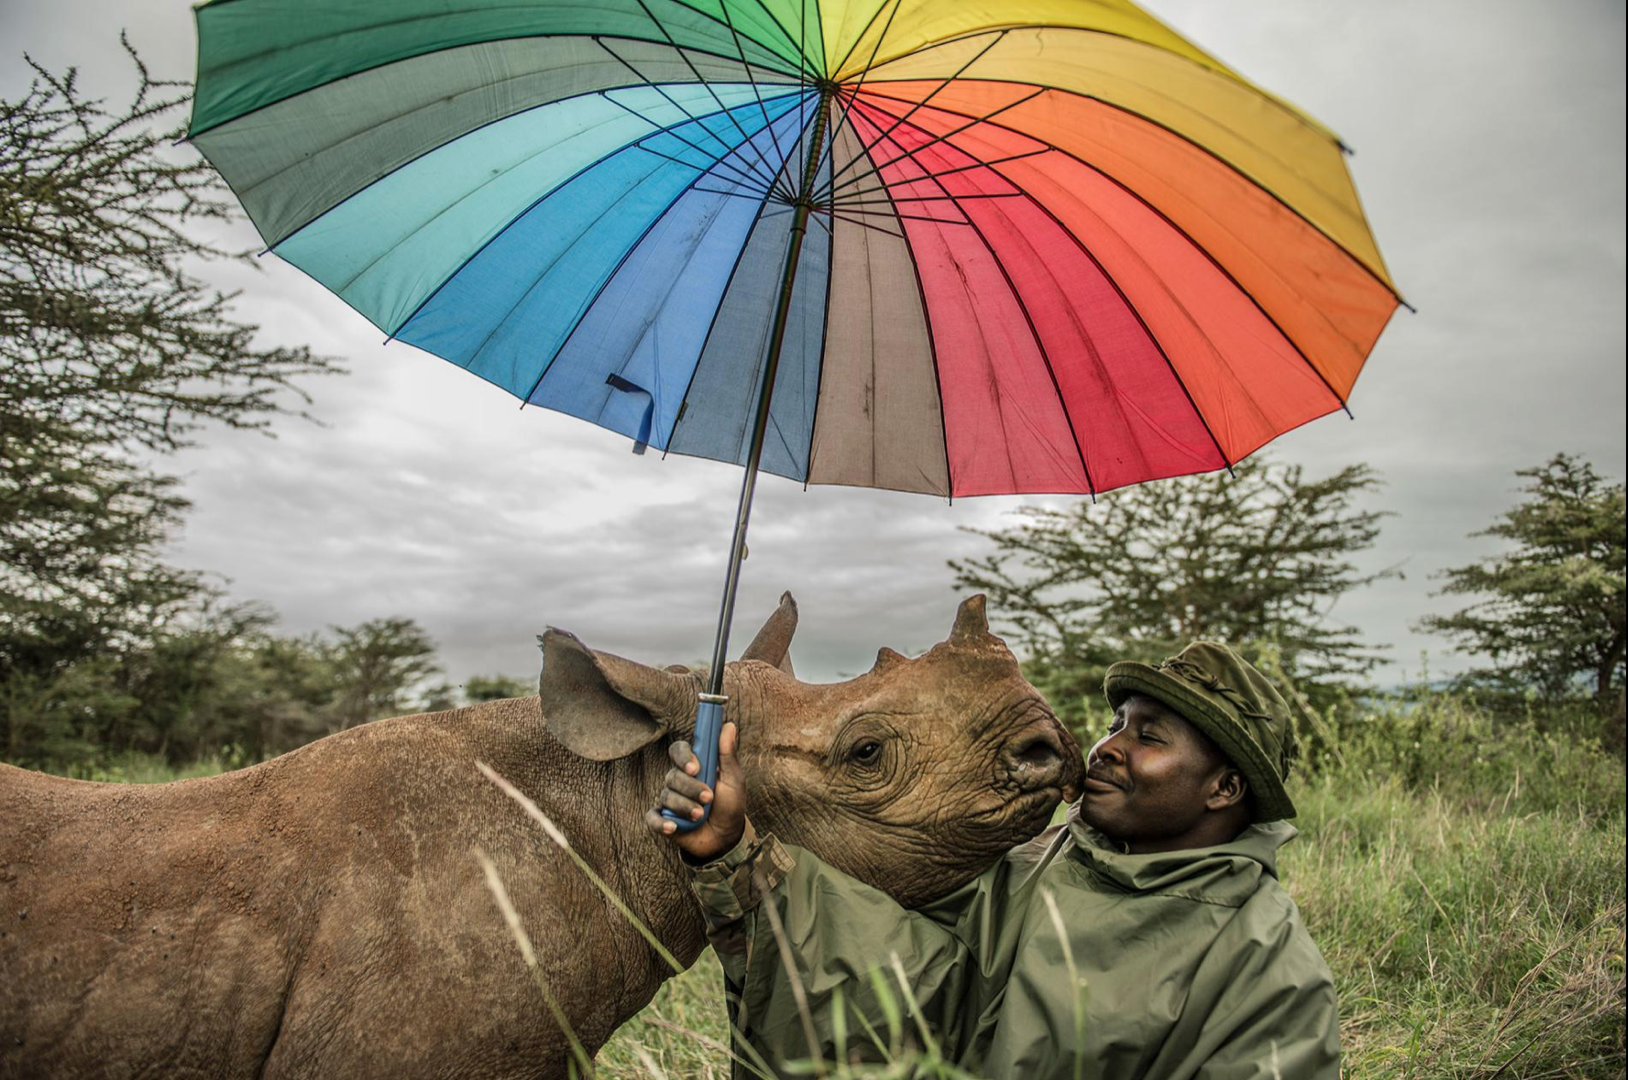 One stunning thing: NatGeo's Photos of Life on Earth